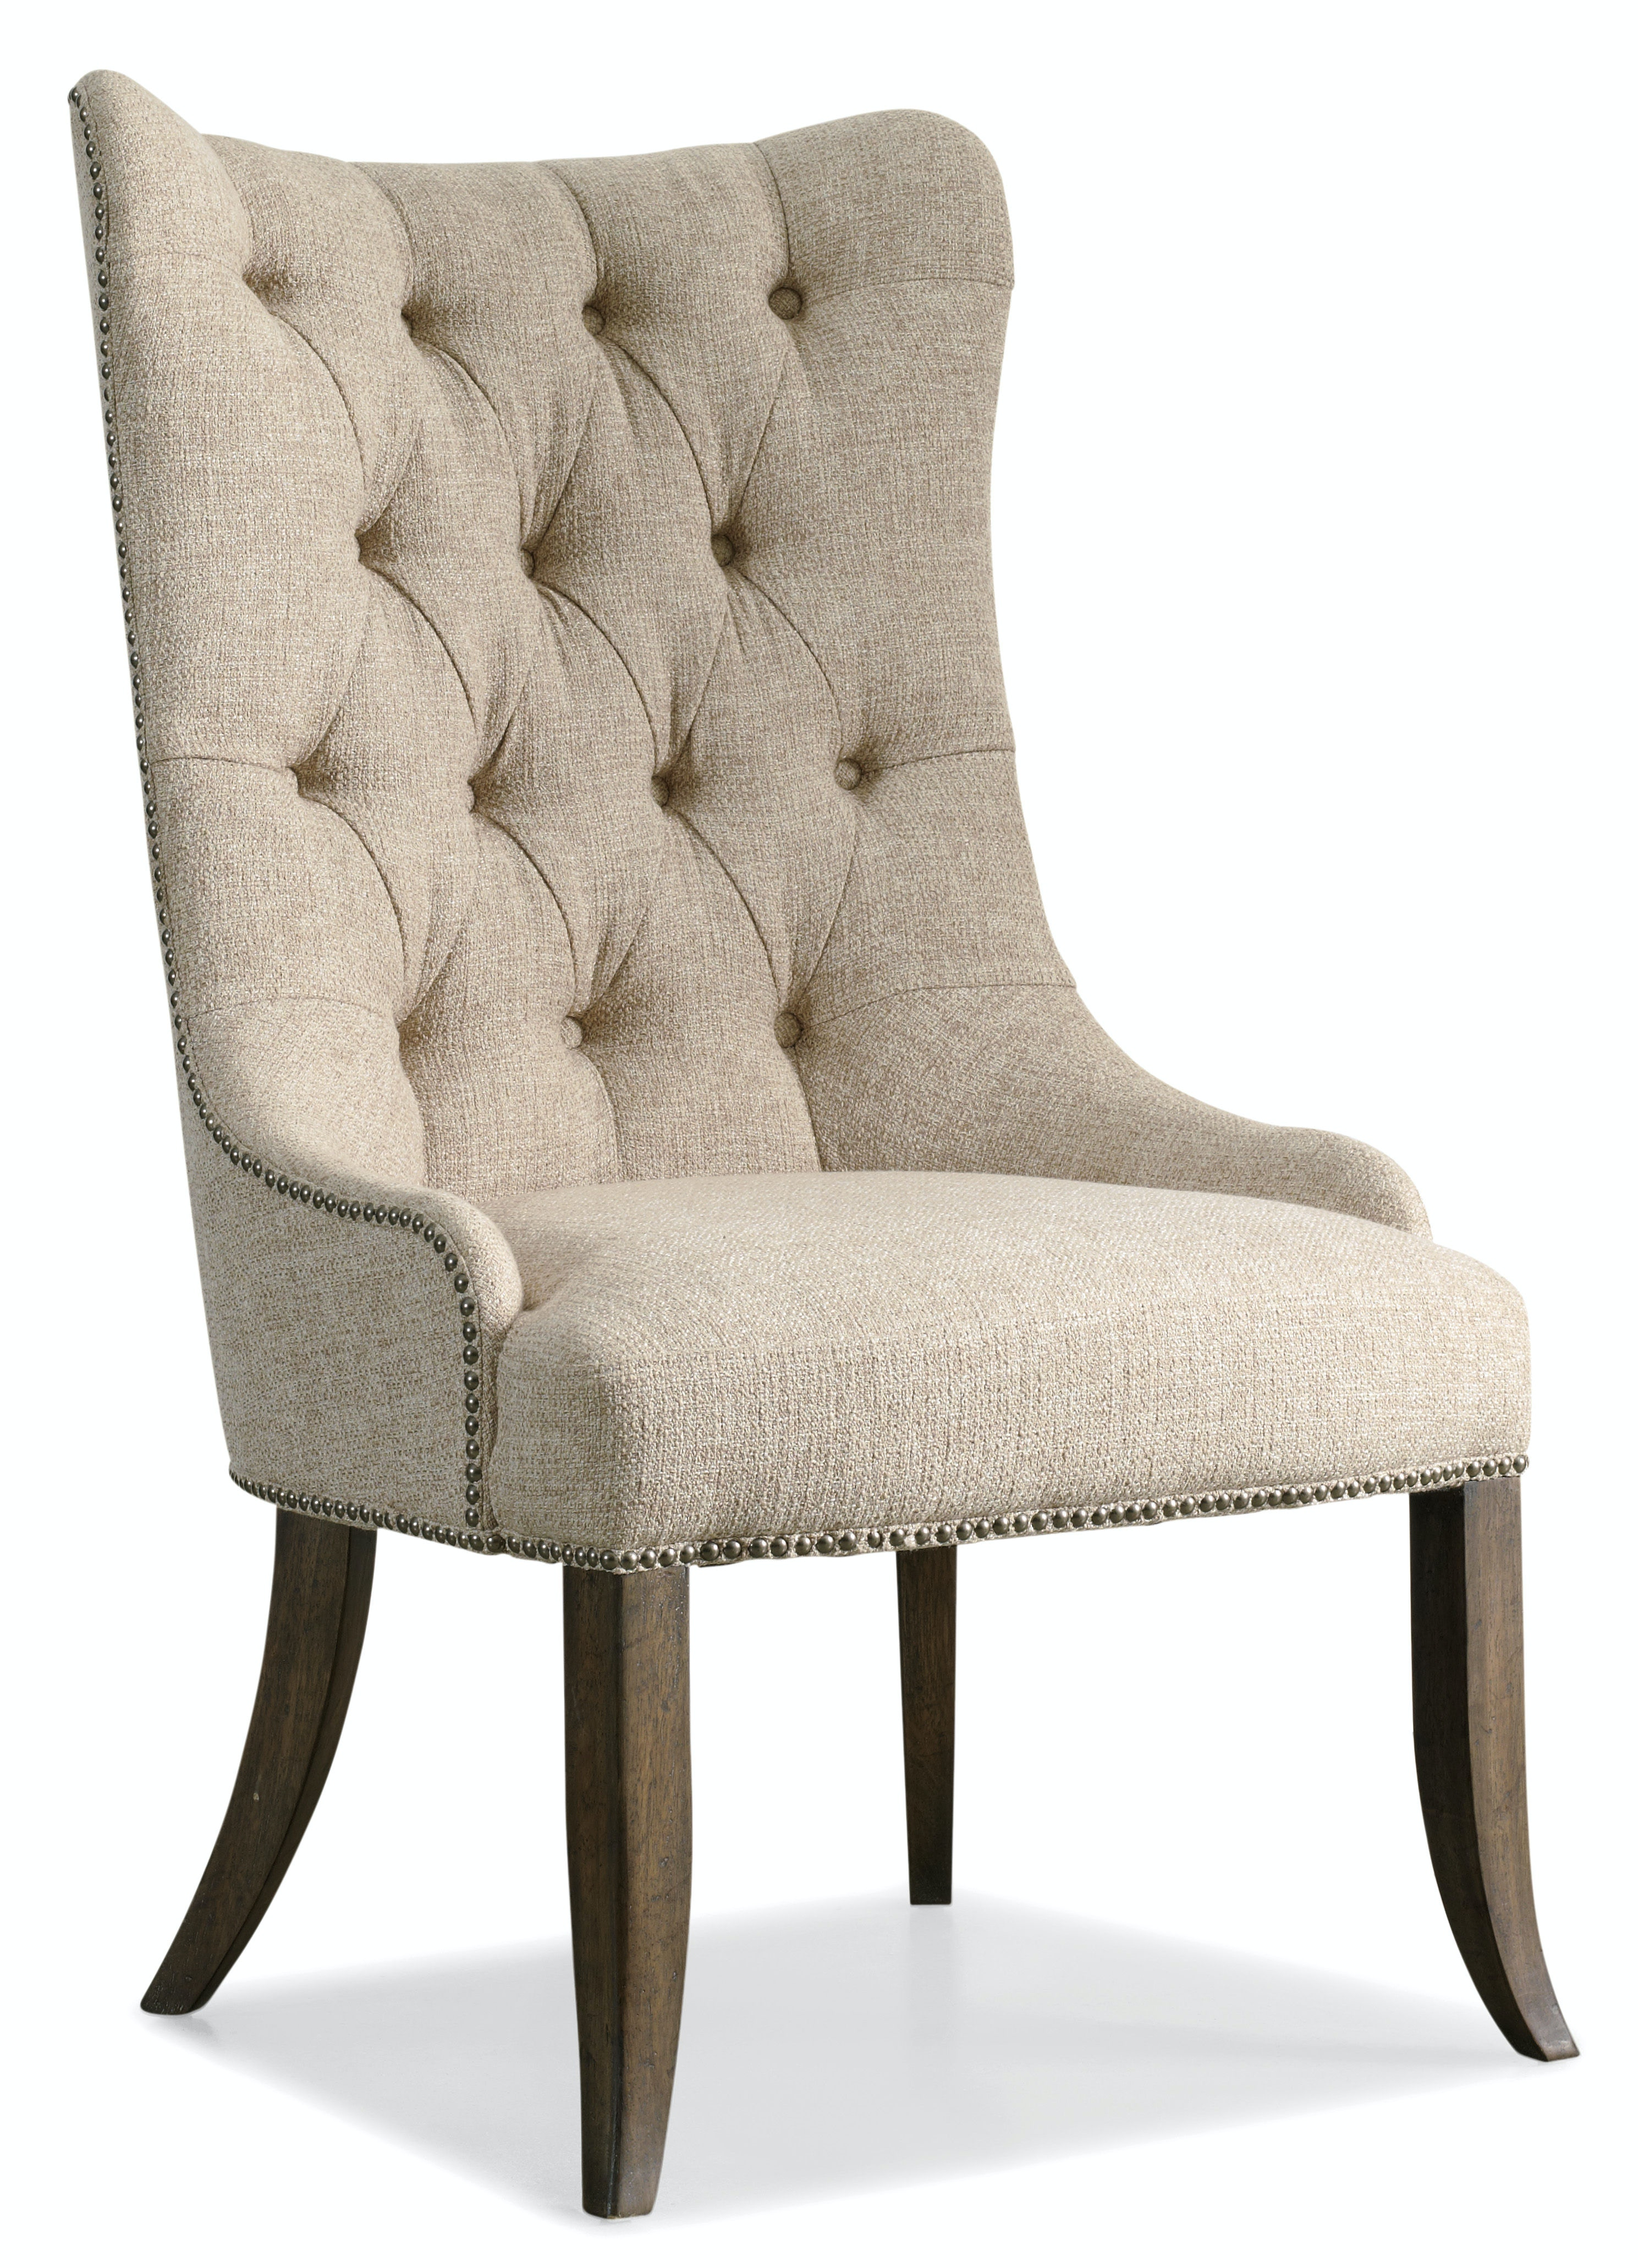 Hooker Furniture Rhapsody Tufted Dining Chair 5070 75511